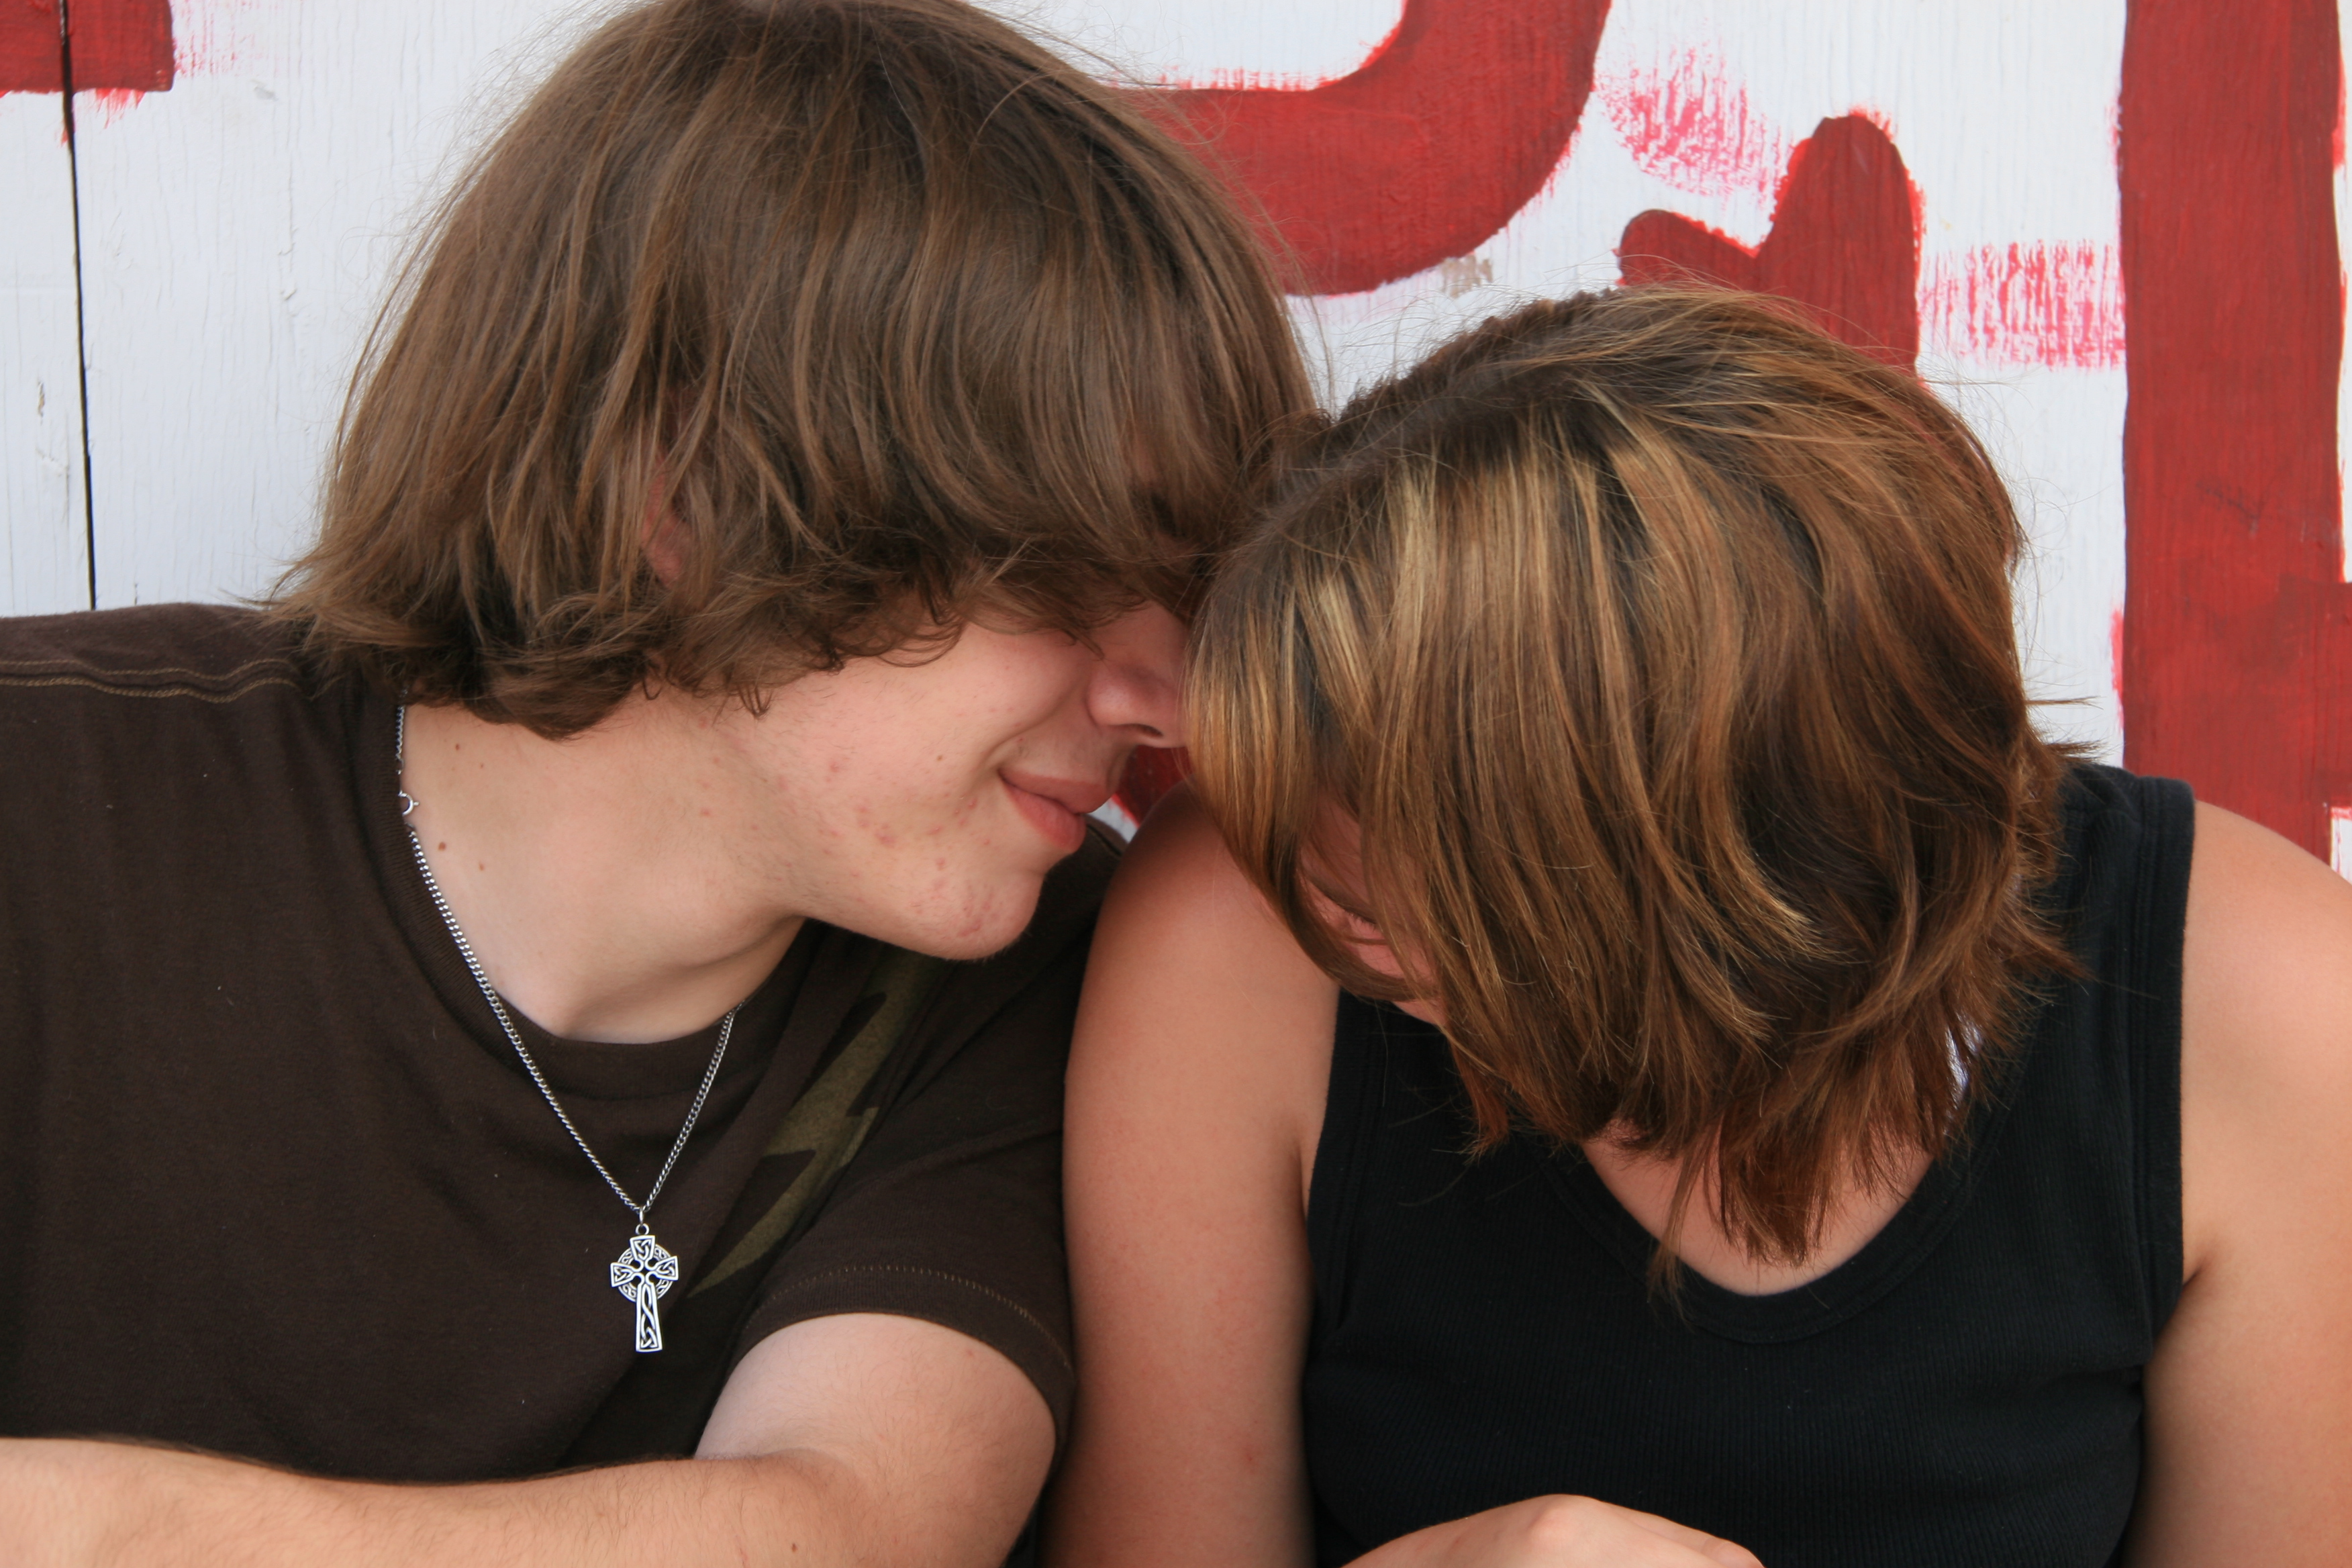 Teenage dating tips for parents